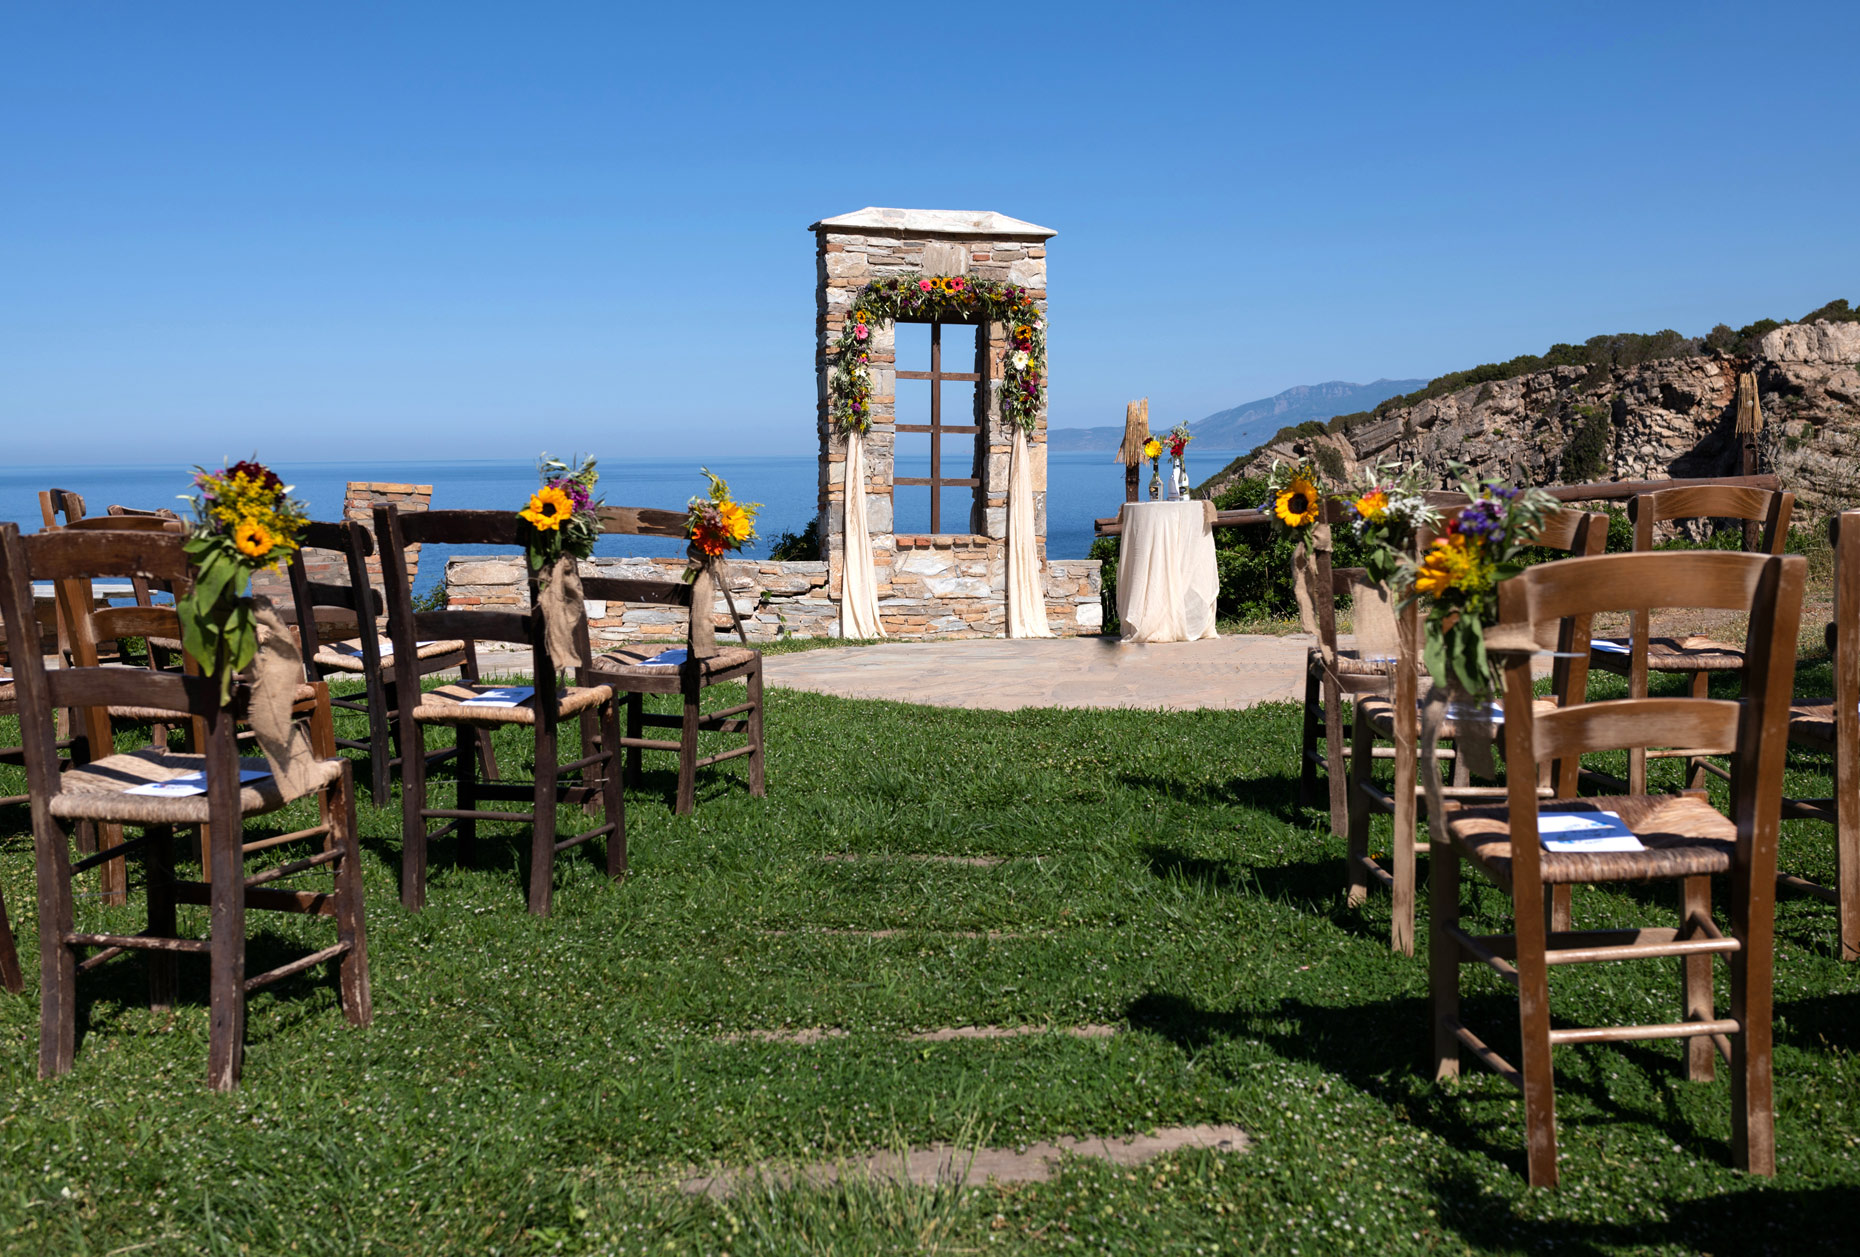 Villa delenia wedding | Wedding in Evia